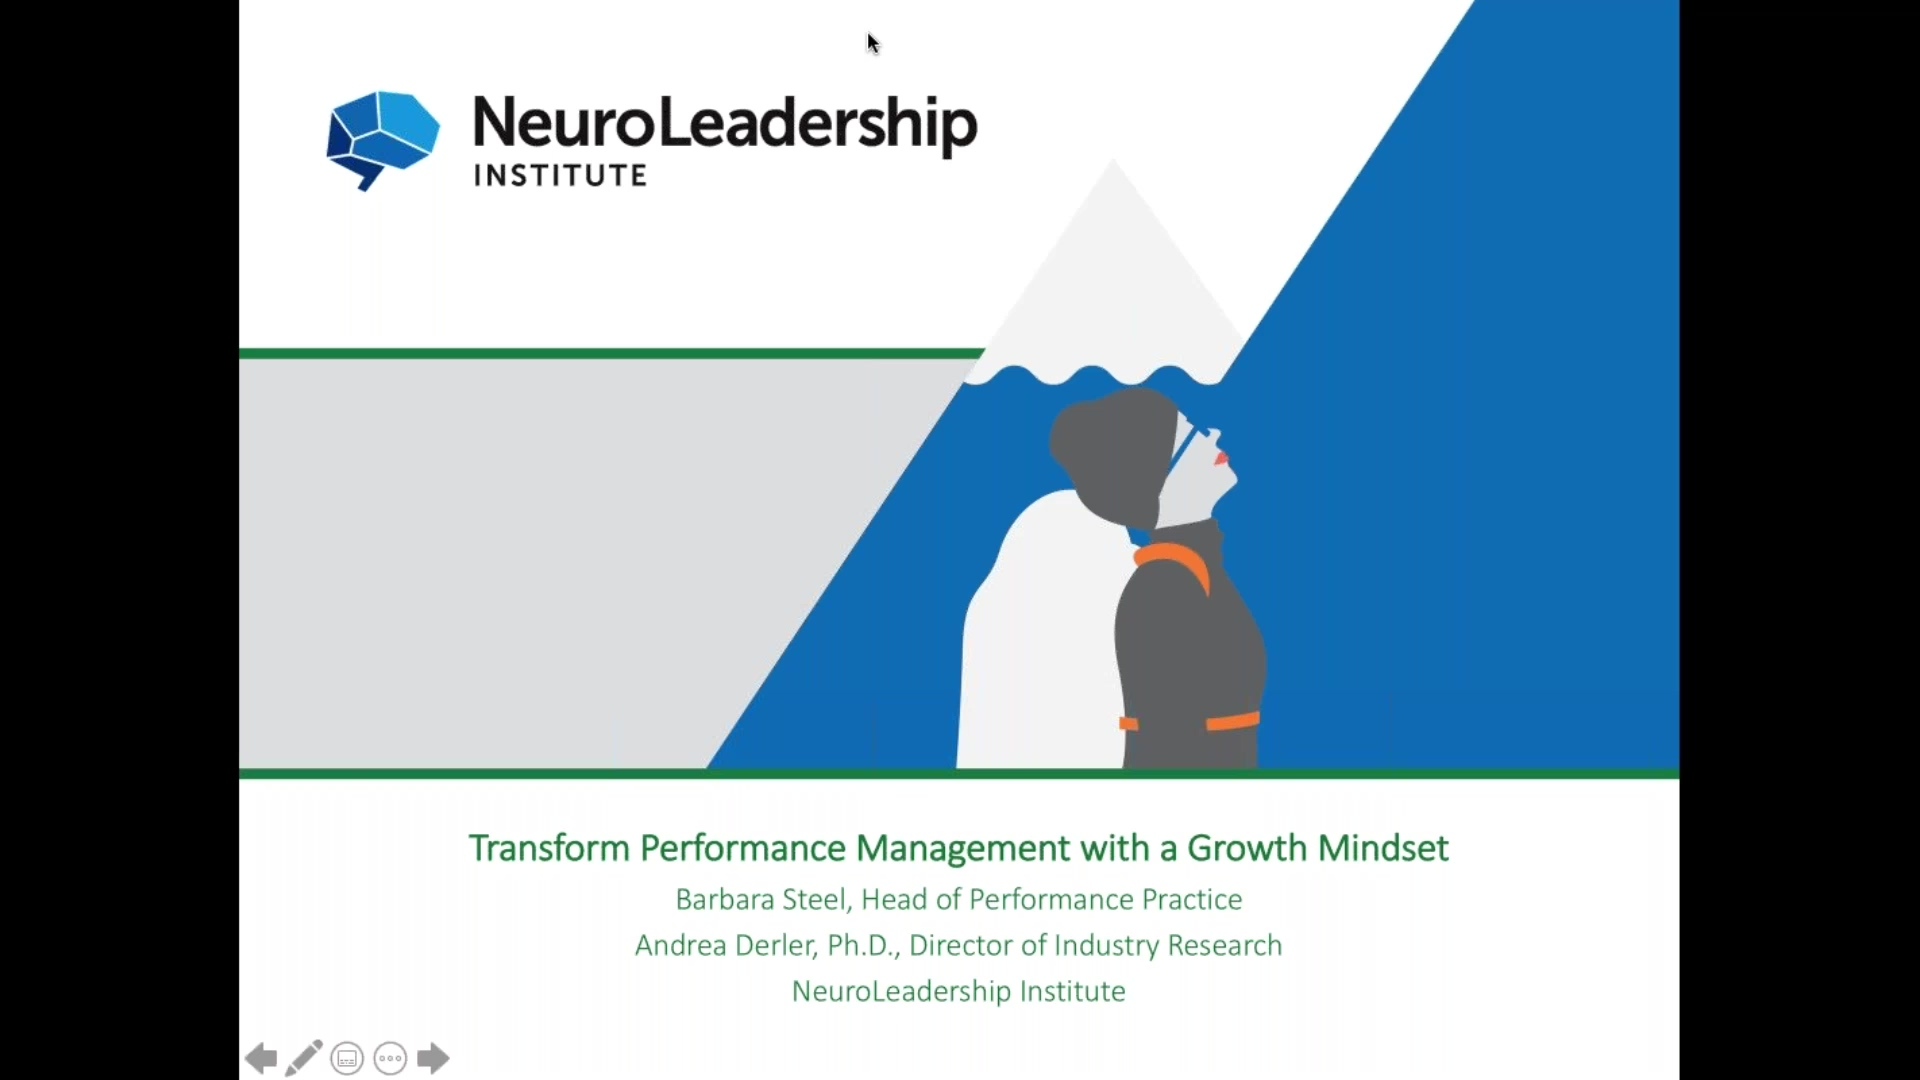 Transform Performance Management with a Growth Mindset